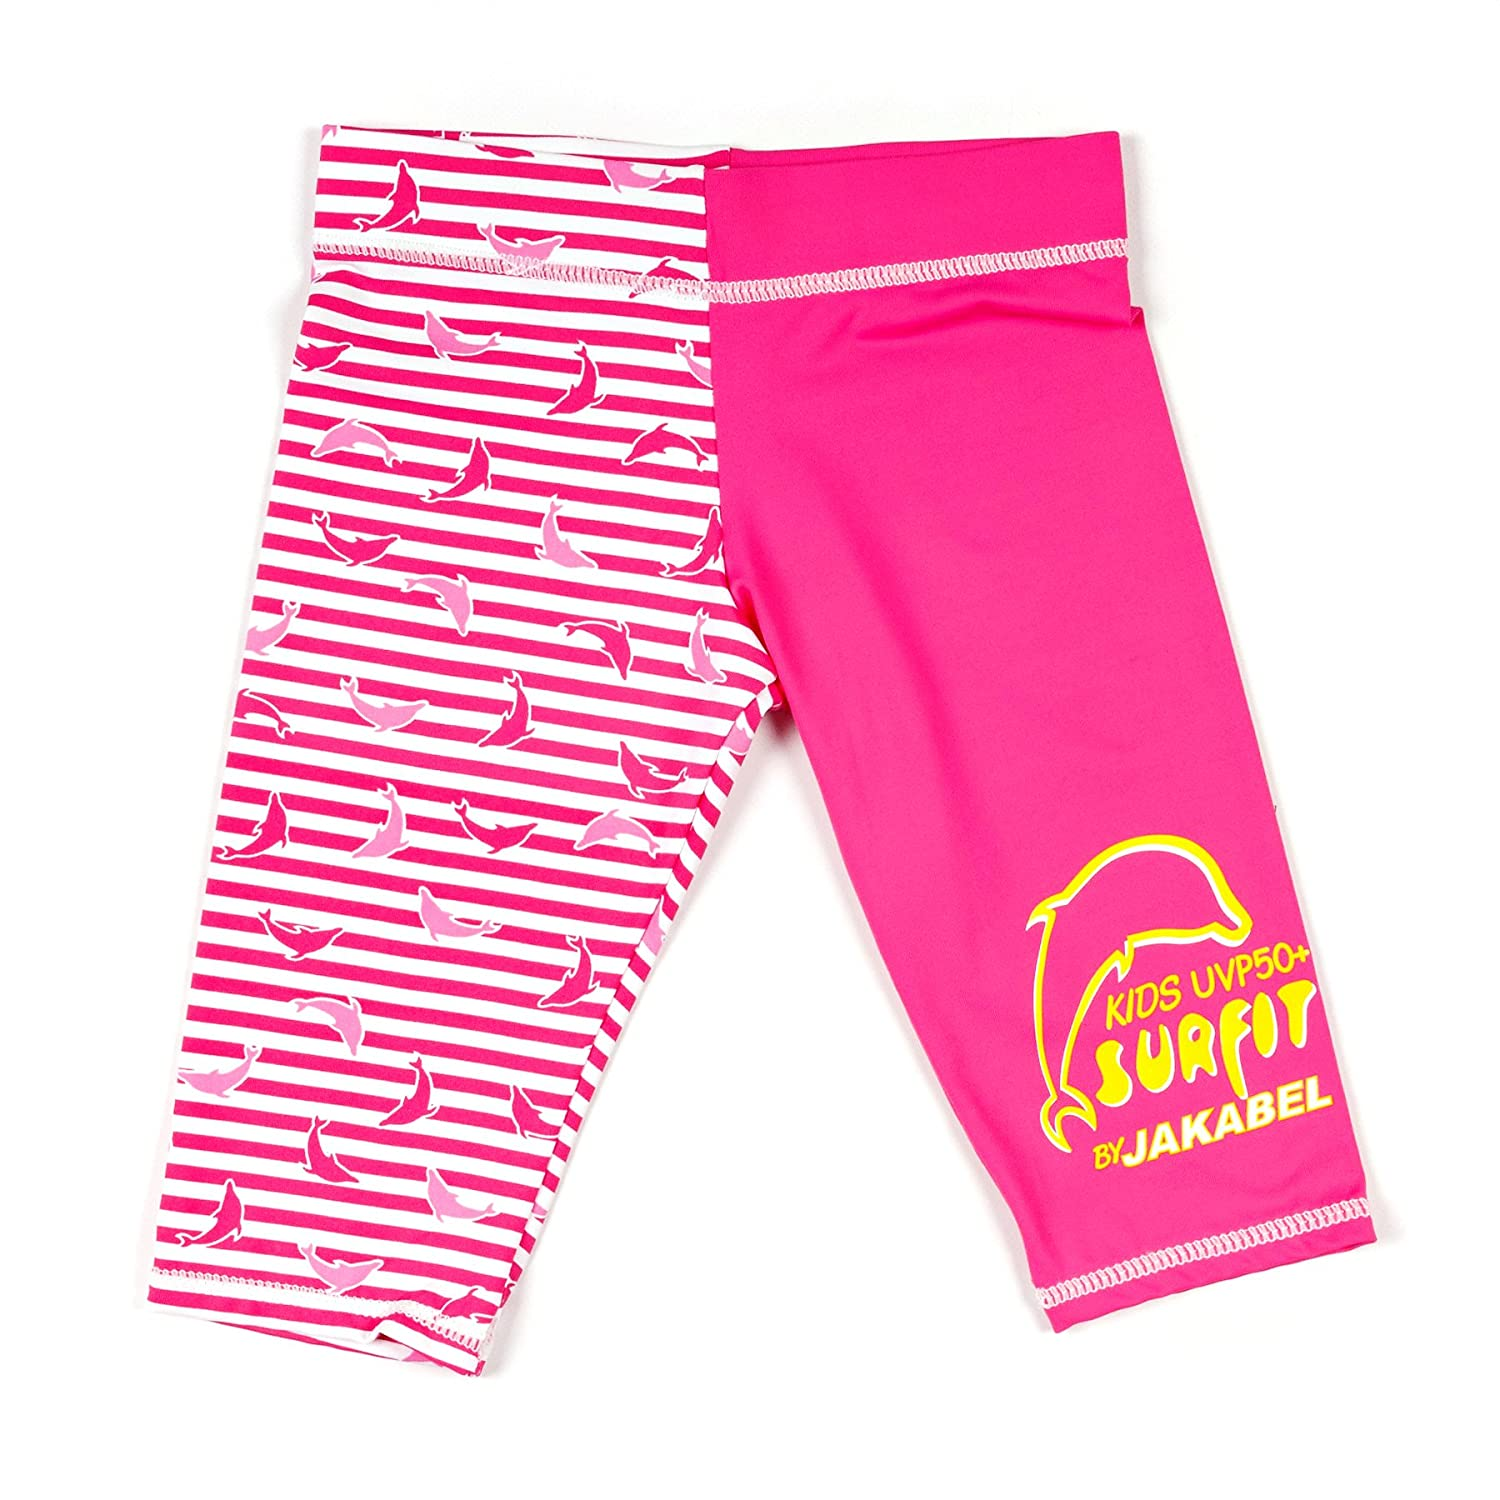 Surfit Girls Jammers Long Shorts Jakabel